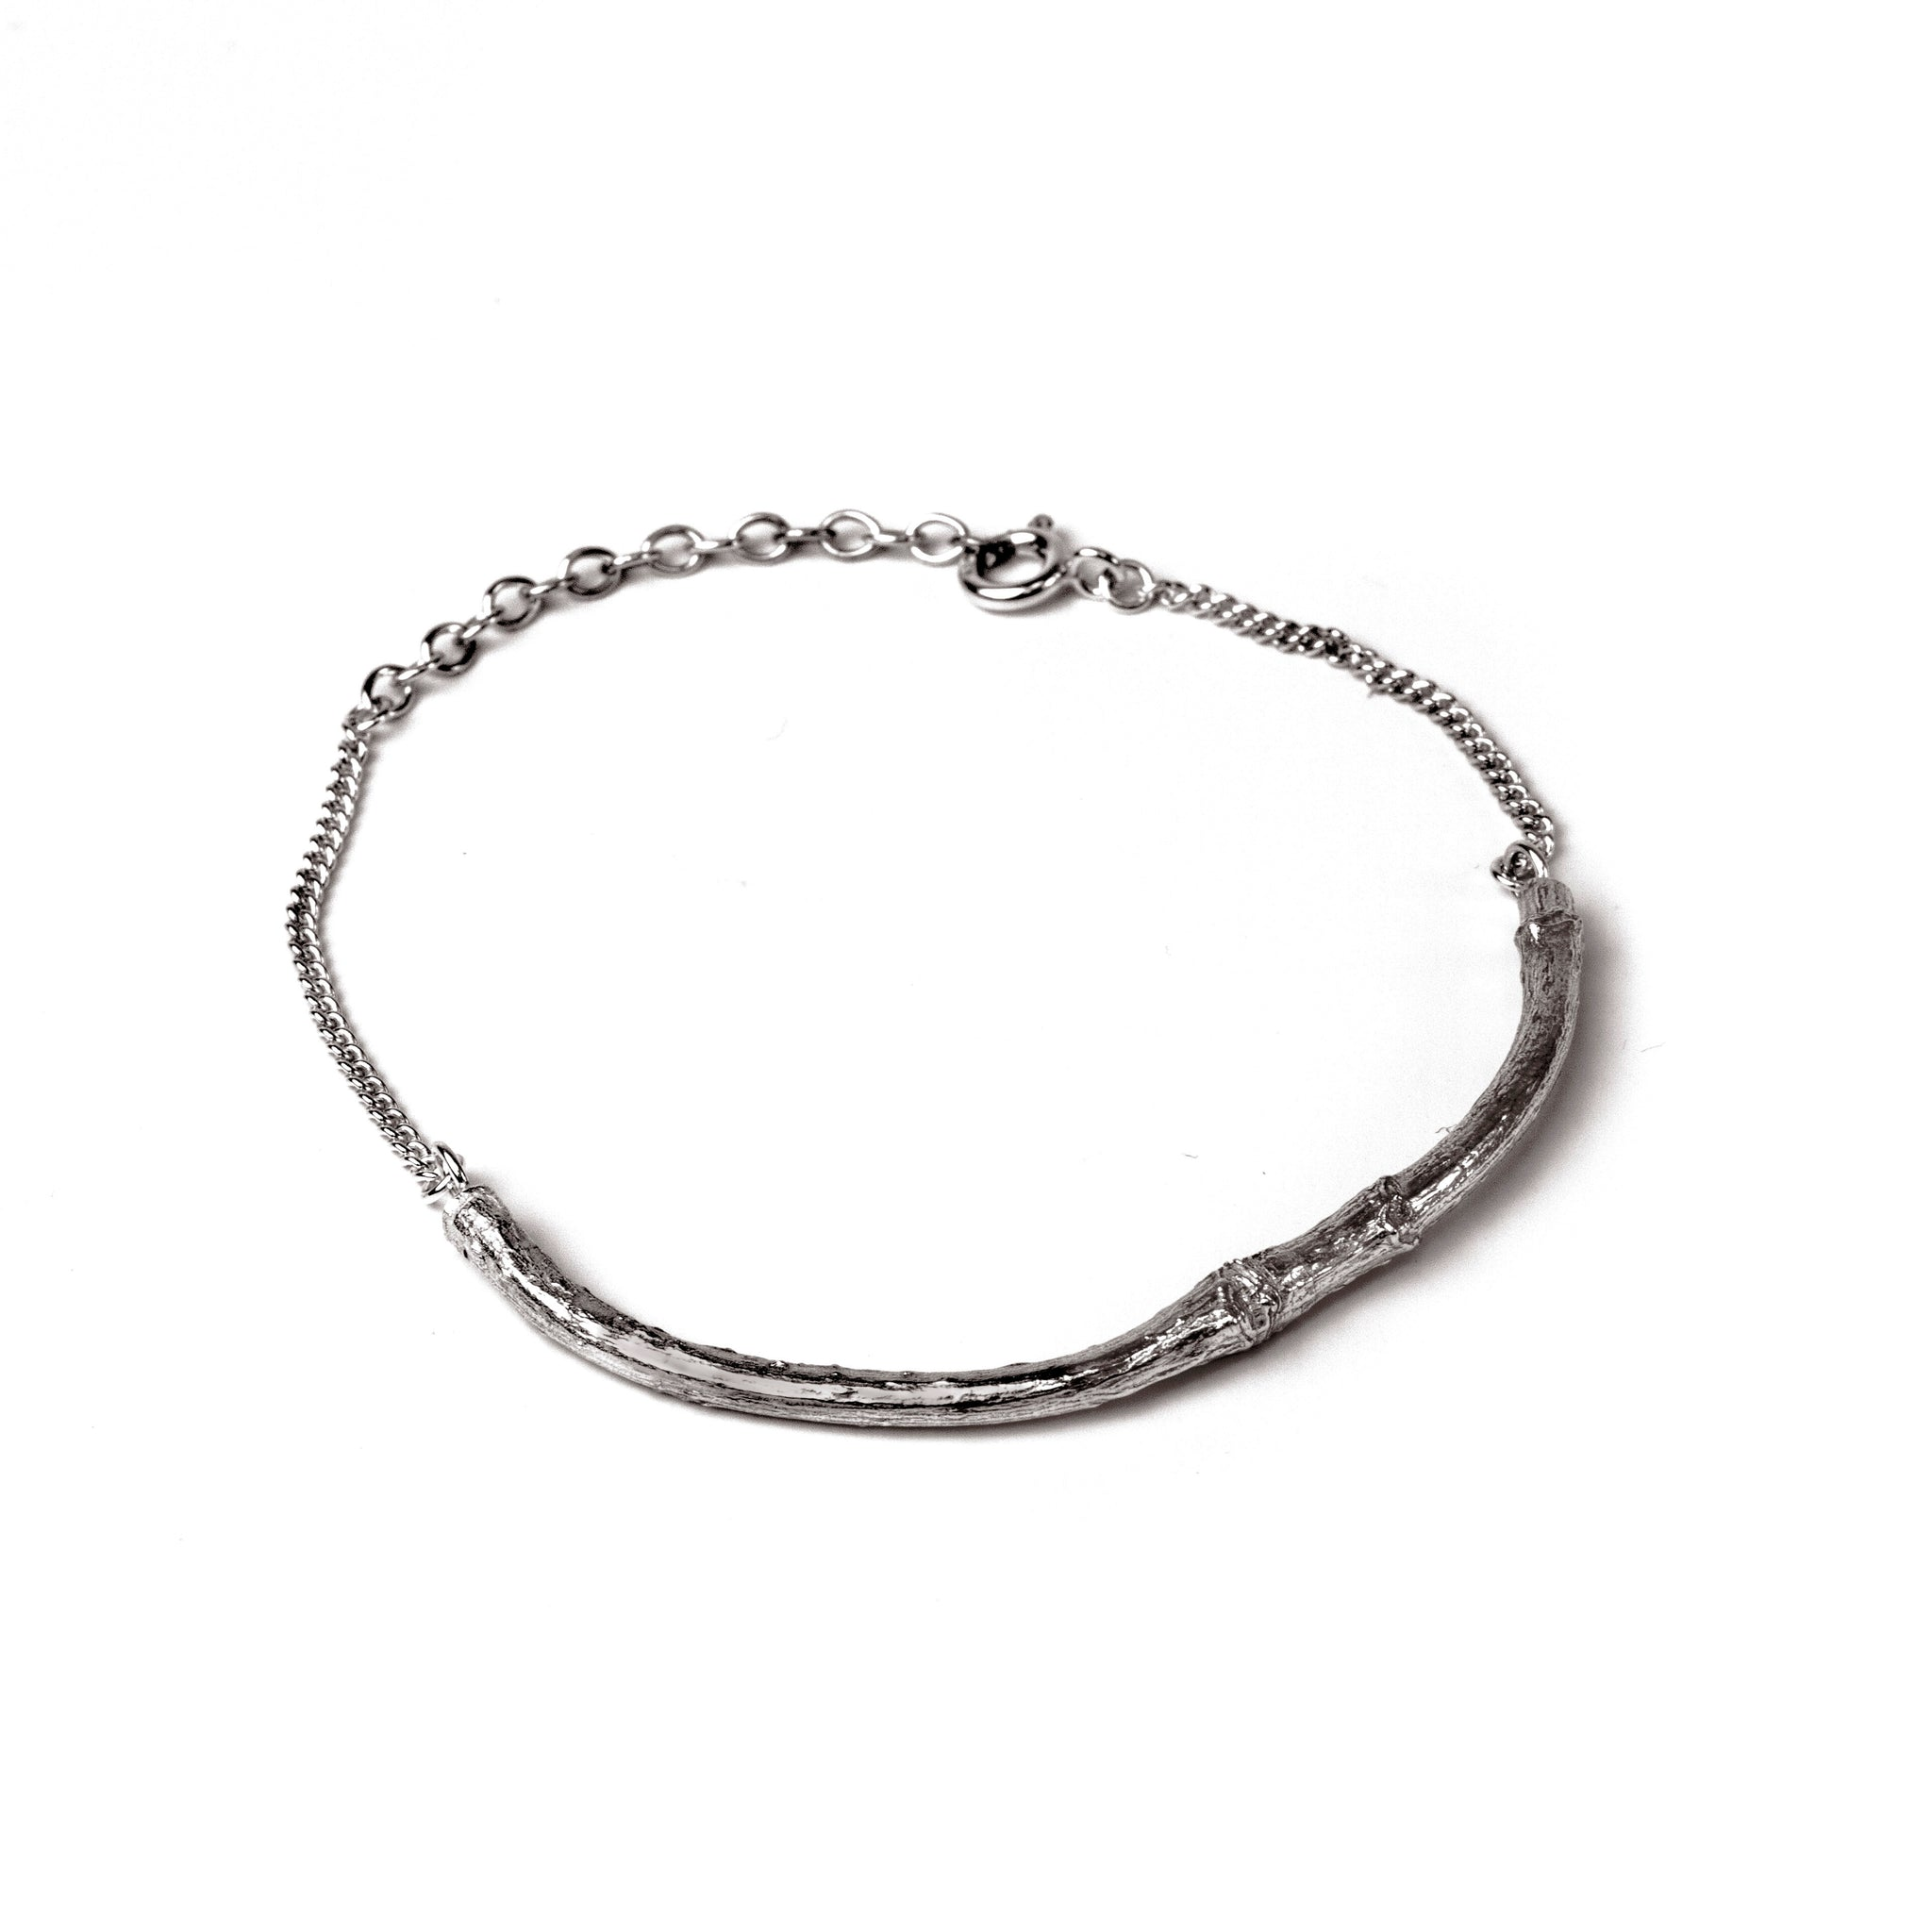 Oxidised Twig Bracelet on white background